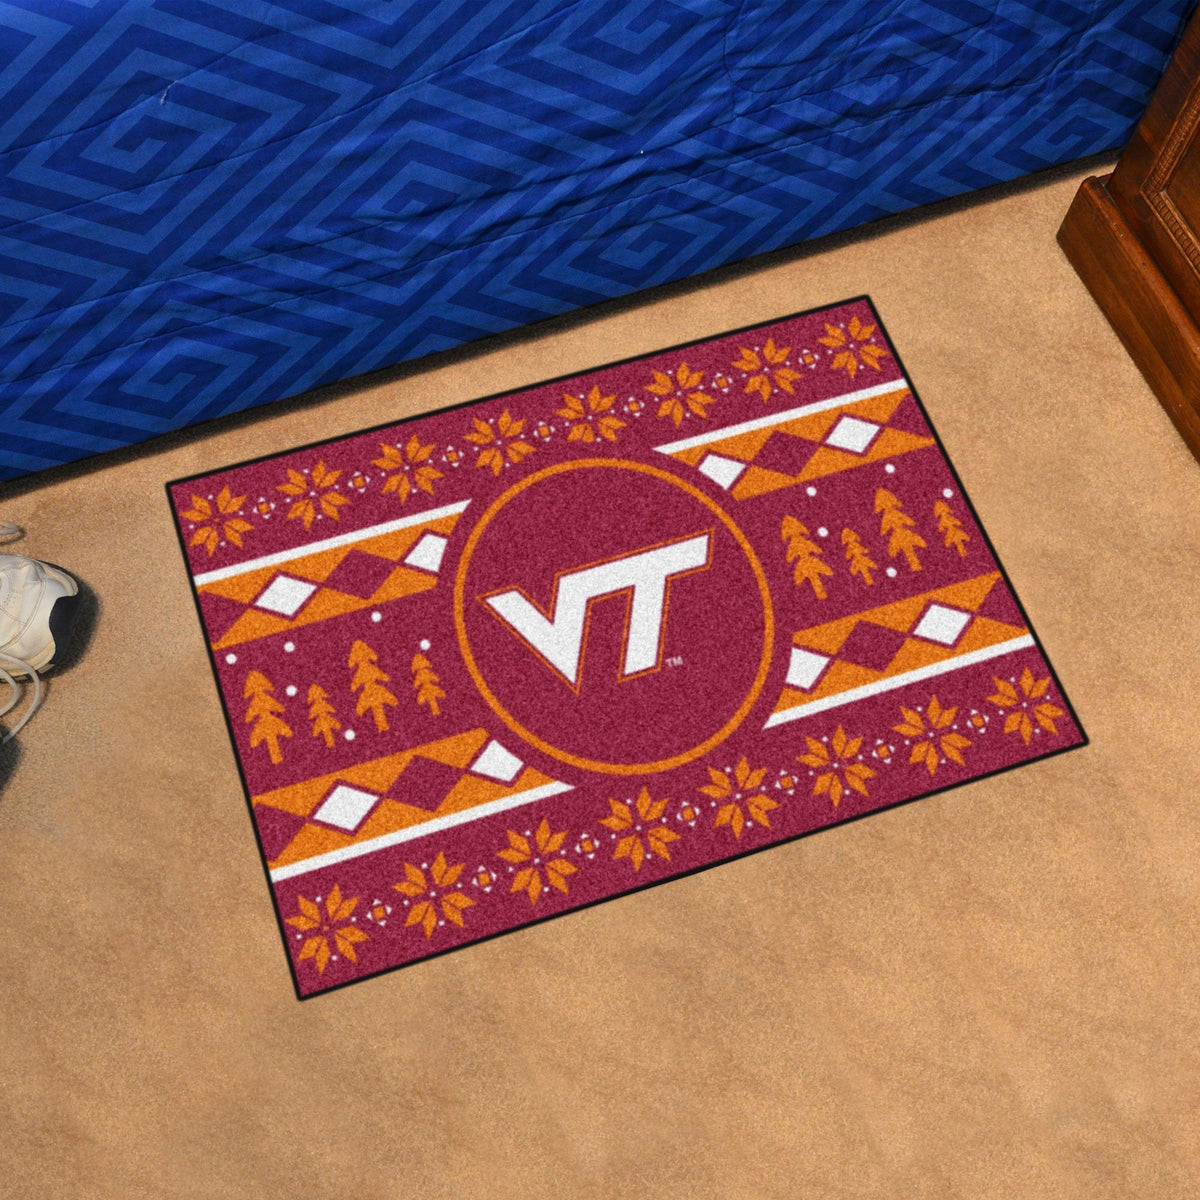 Collegiate - Holiday Sweater Starter Mat Collegiate Mats, Rectangular Mats, Holiday Sweater Starter Mat, Collegiate, Home Fan Mats Virginia Tech